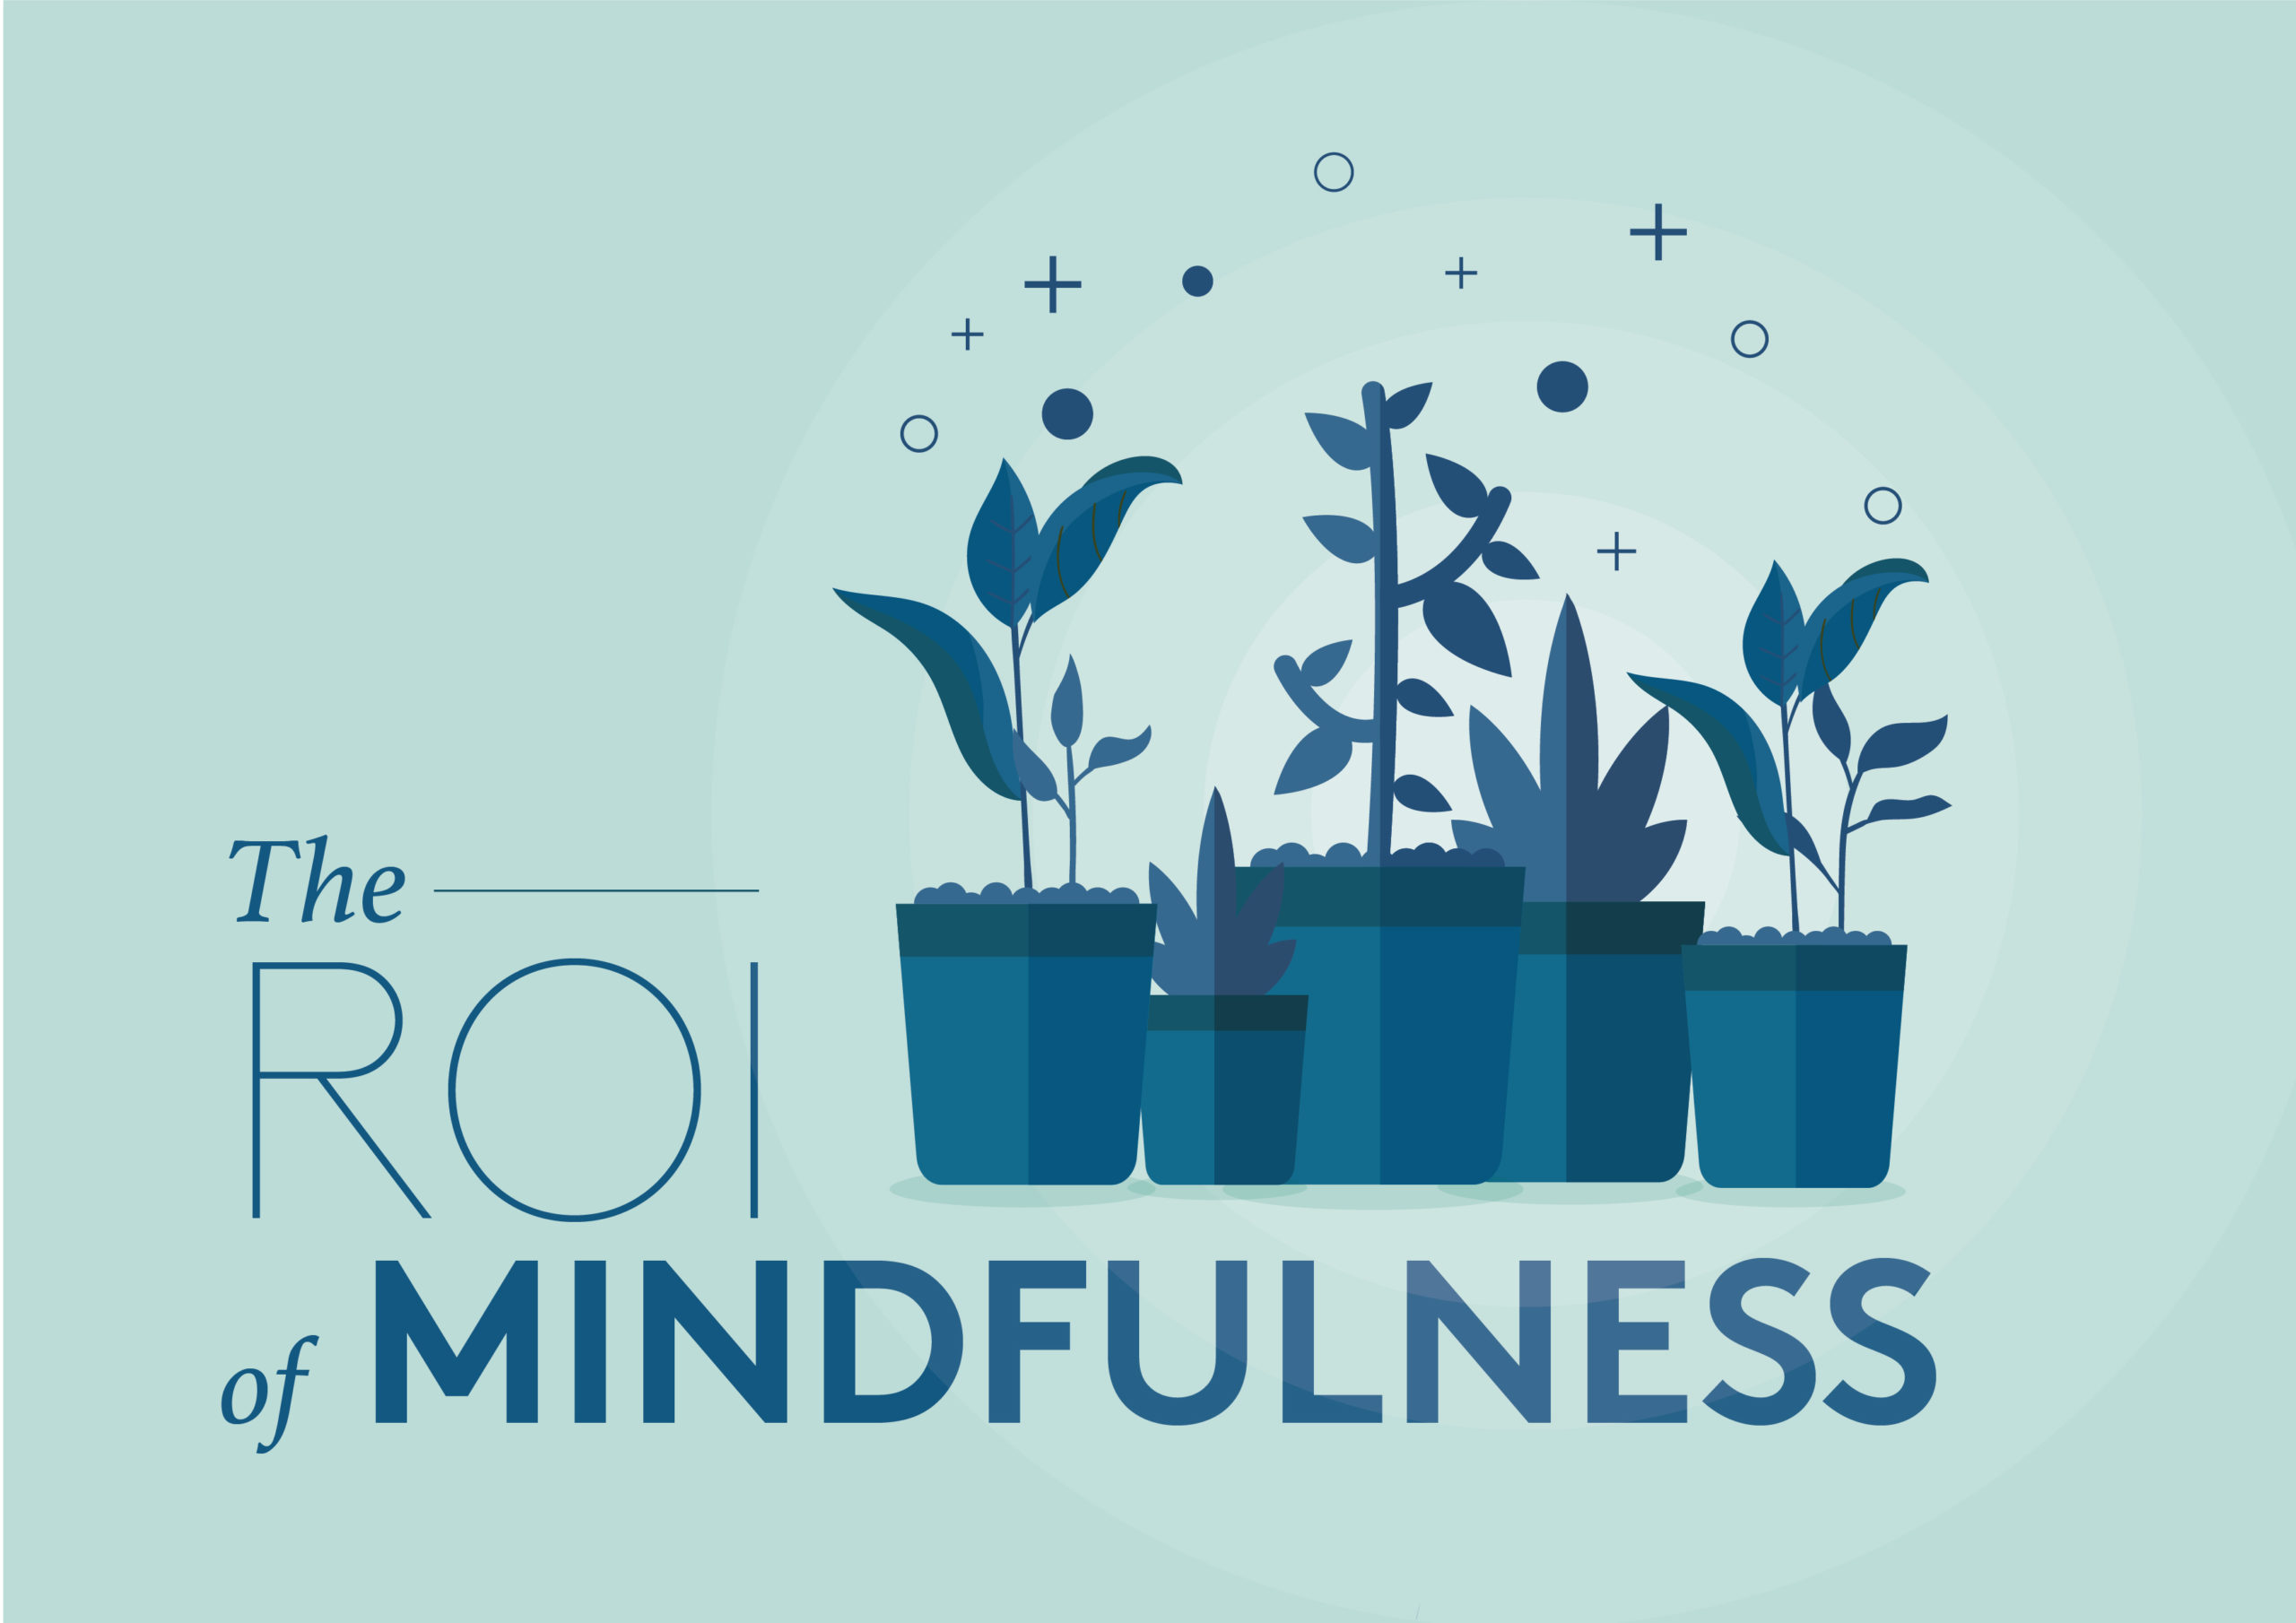 The ROI of Mindfulness